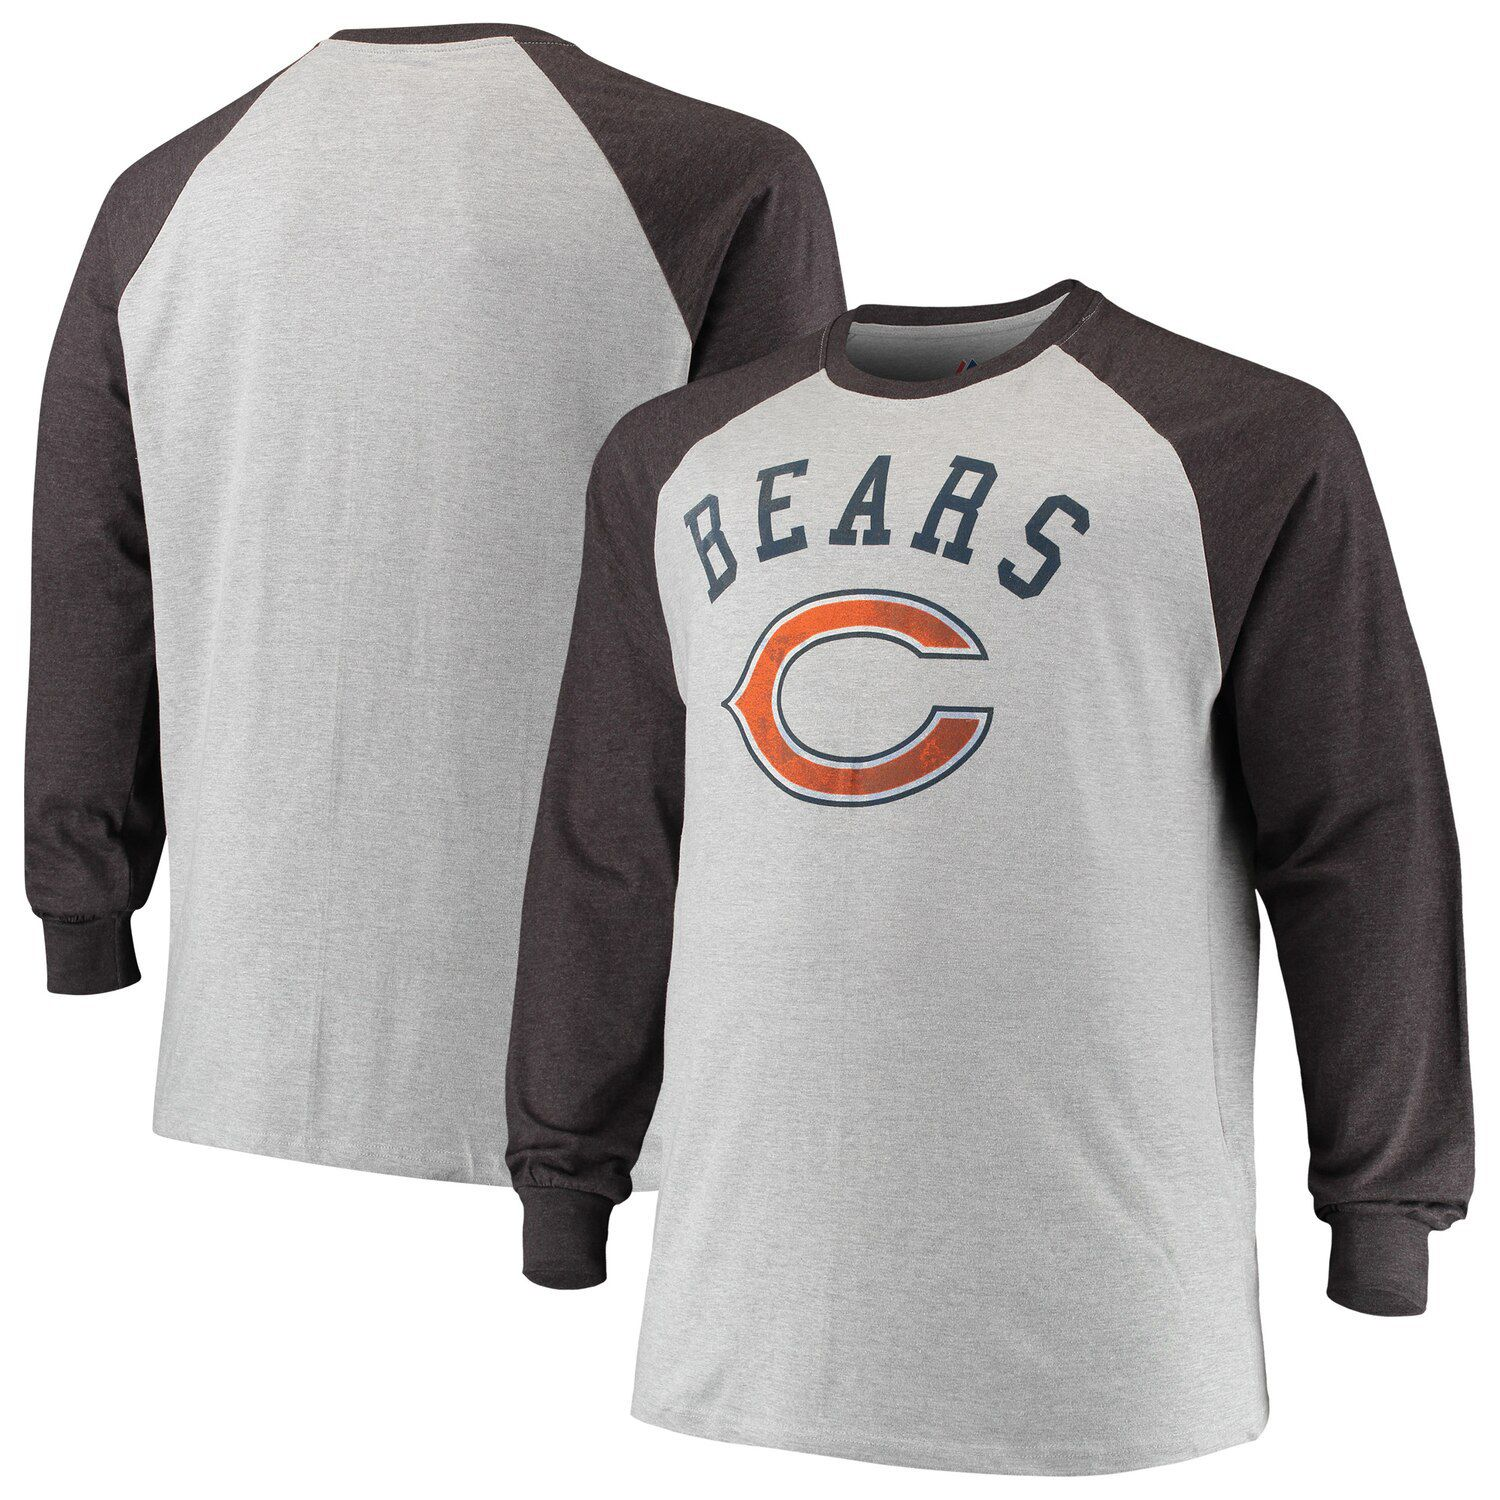 chicago bears sweatshirt big and tall